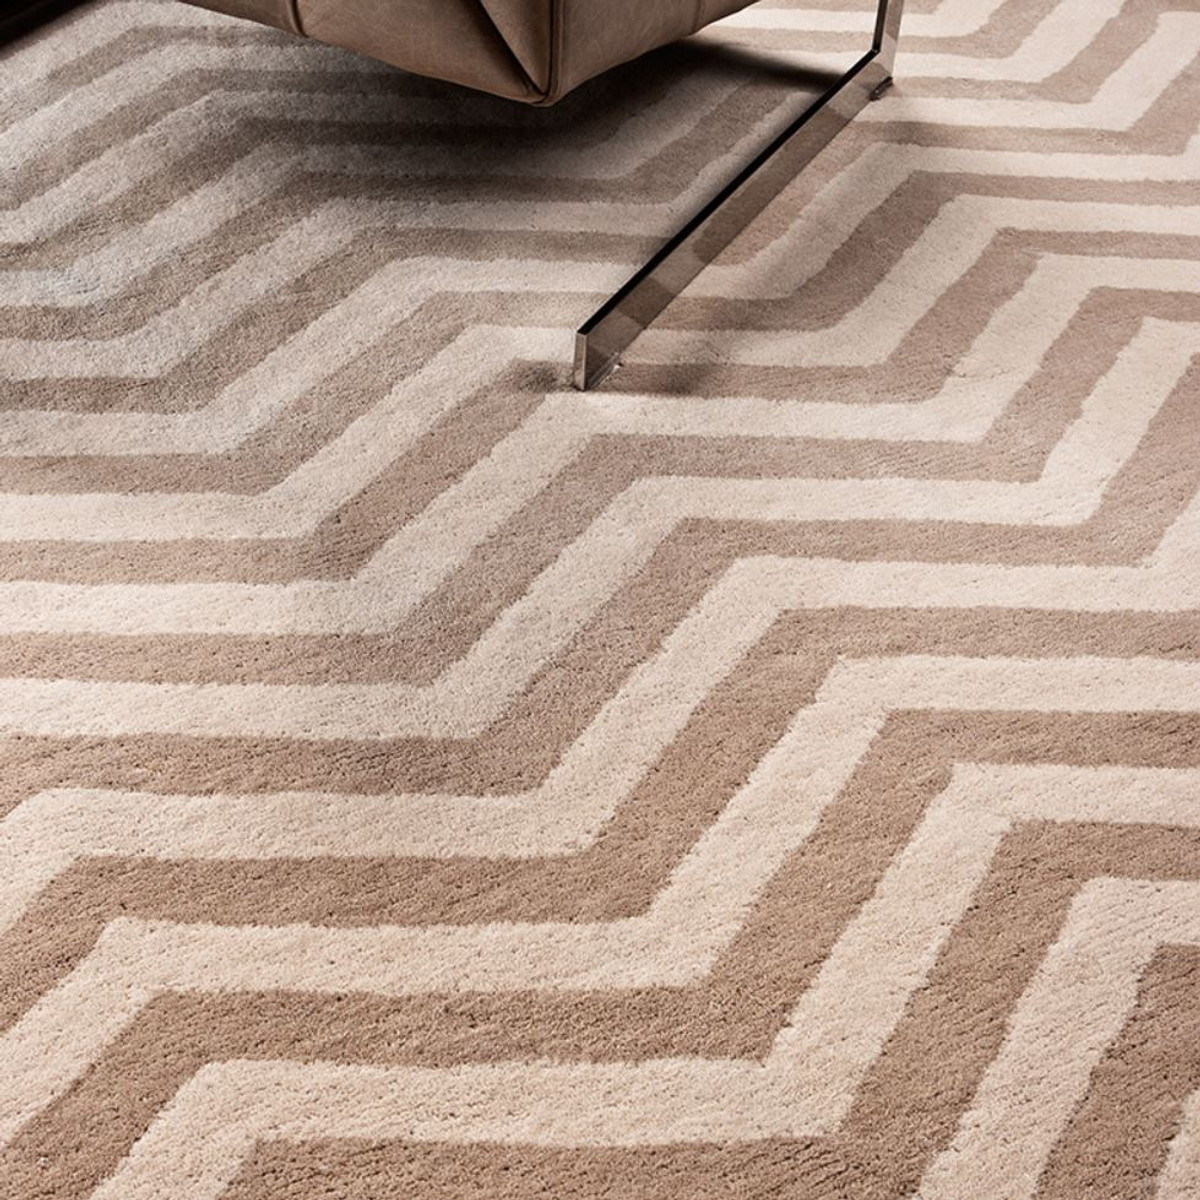 Casa Padrino Luxury Living Room Carpet Beige 200 x 300 cm ...